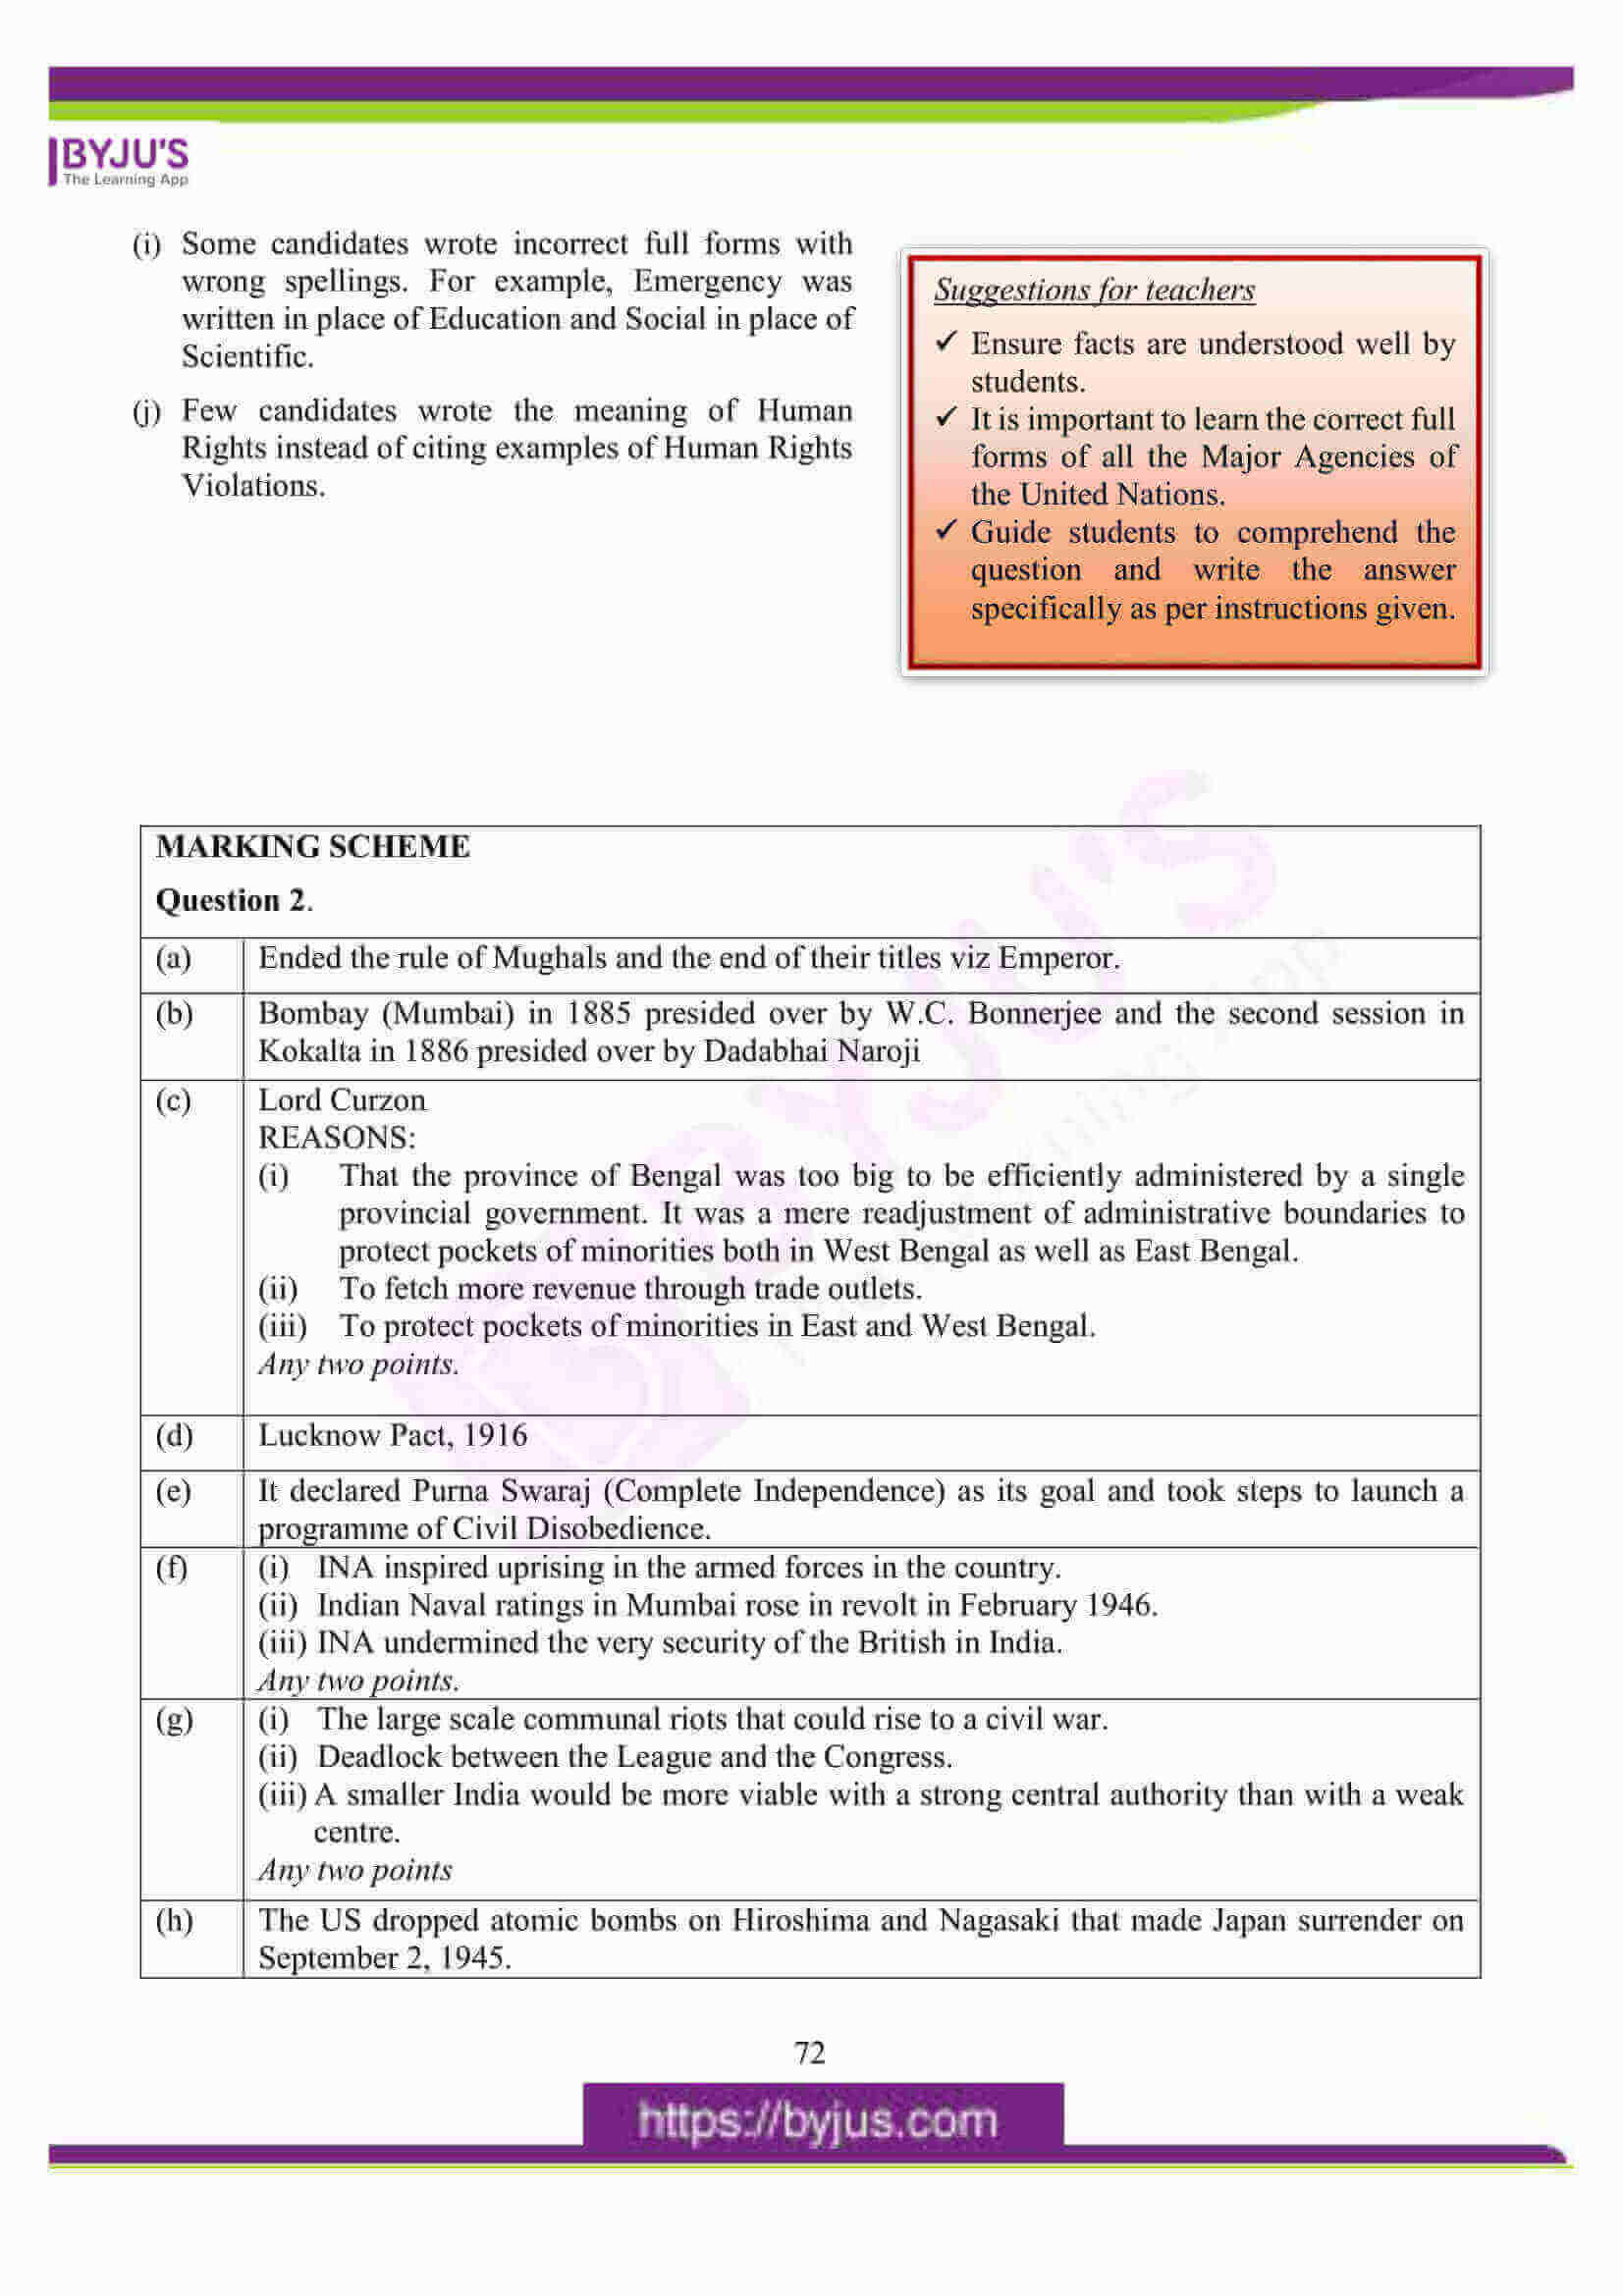 icse class 10 his and civics question paper solution 2016 05